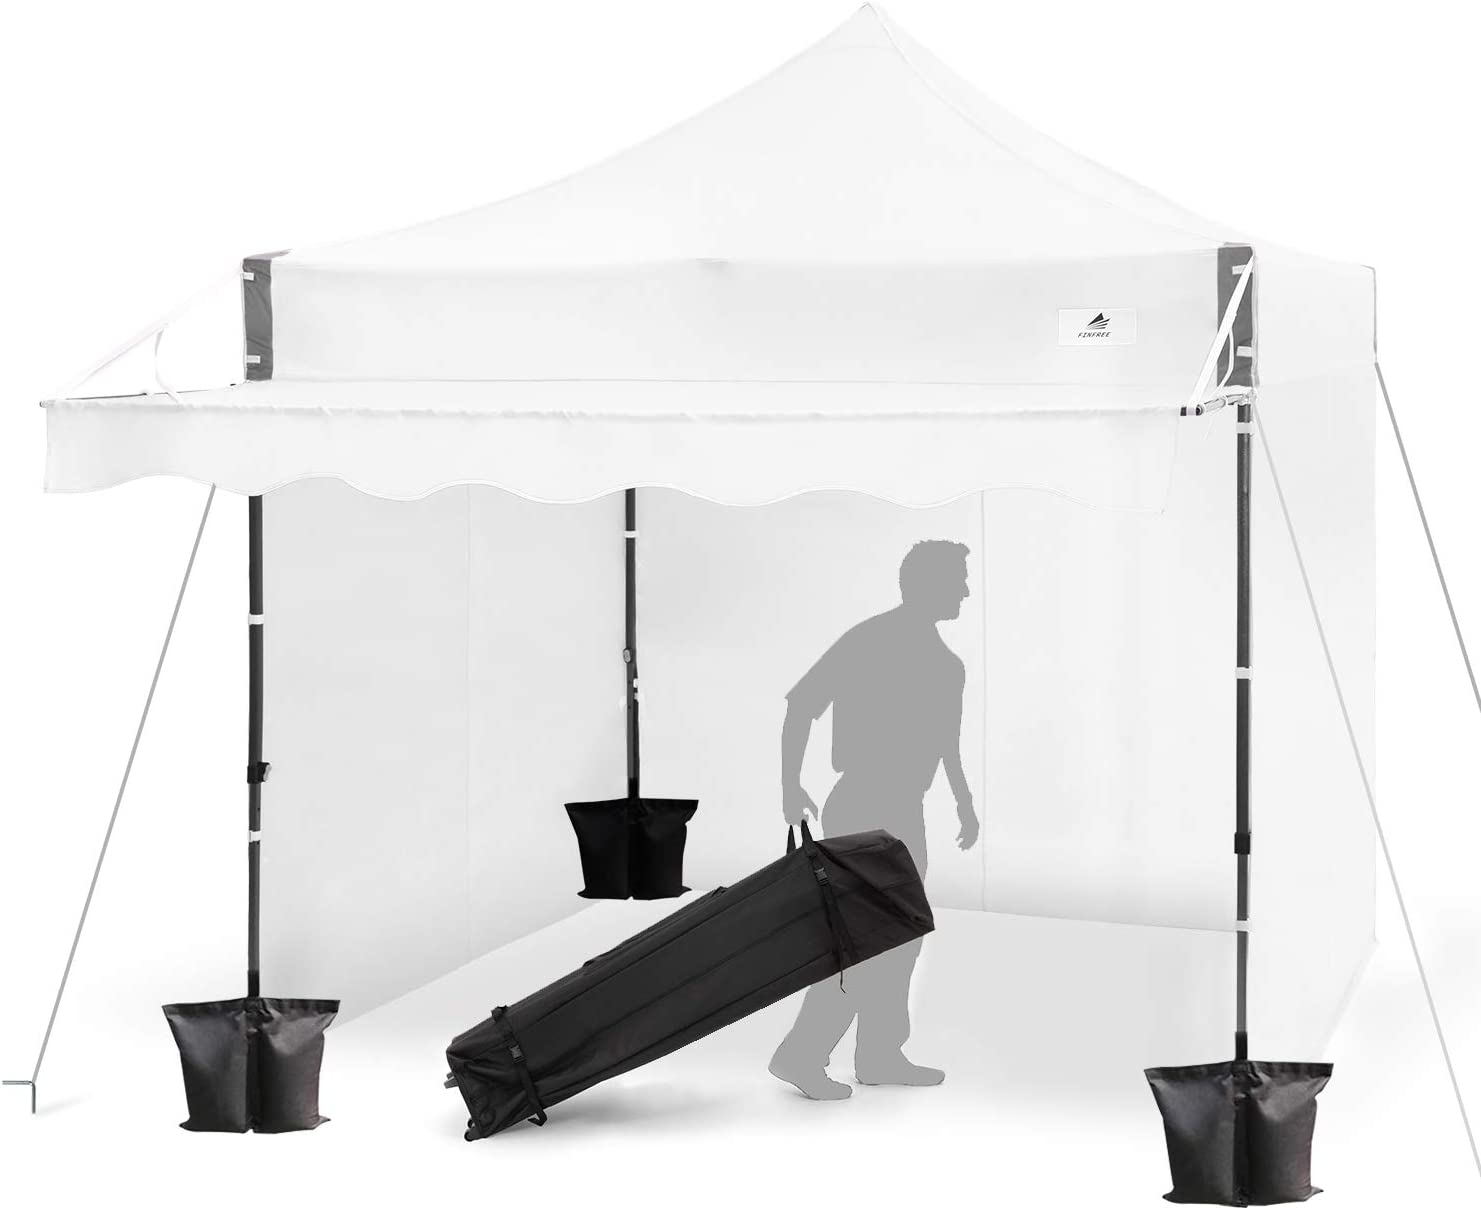 FinFree 10×10 FT Pop Up Canopy Tent Commercial Instant Canopy with Awning, Roller Bag, 6 Walls and Weight Bags, White